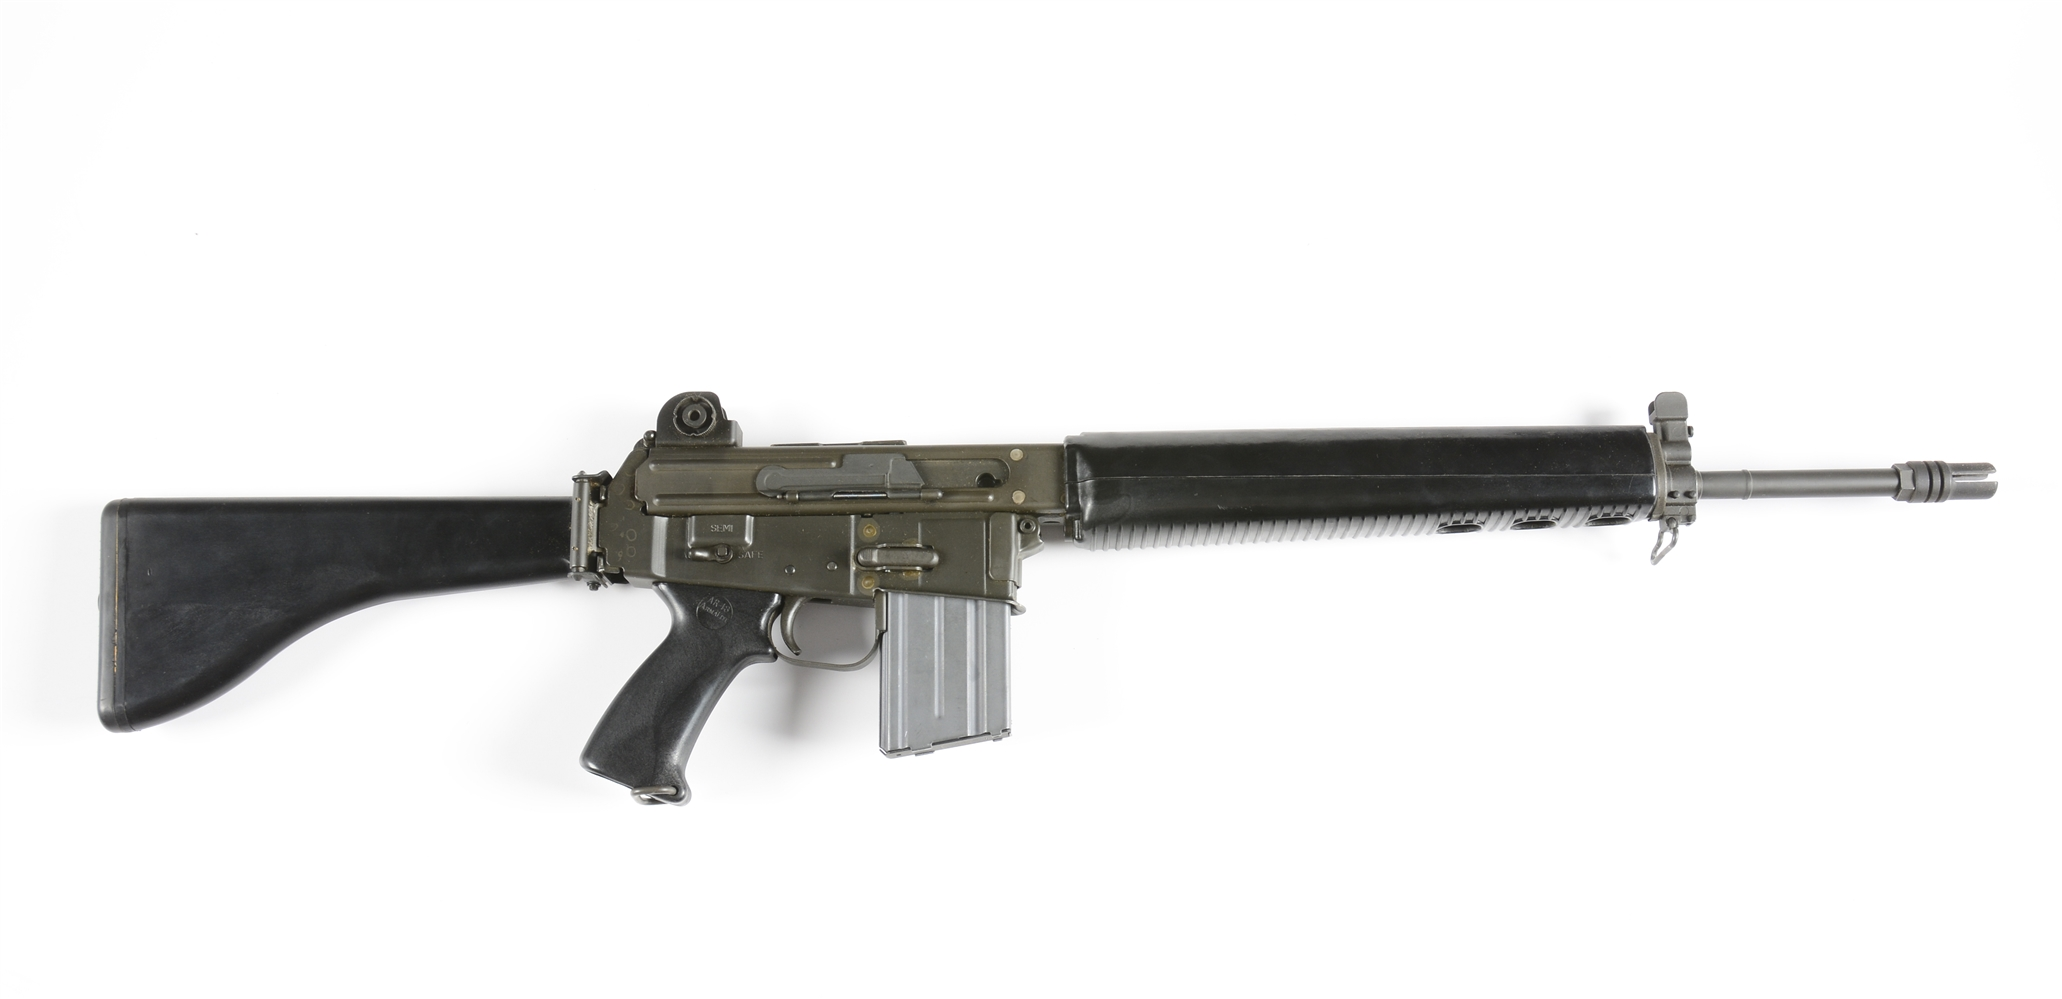 (N) NEW IN BOX ARMALITE AR-18 MACHINE GUN (FULLY TRANSFERABLE).